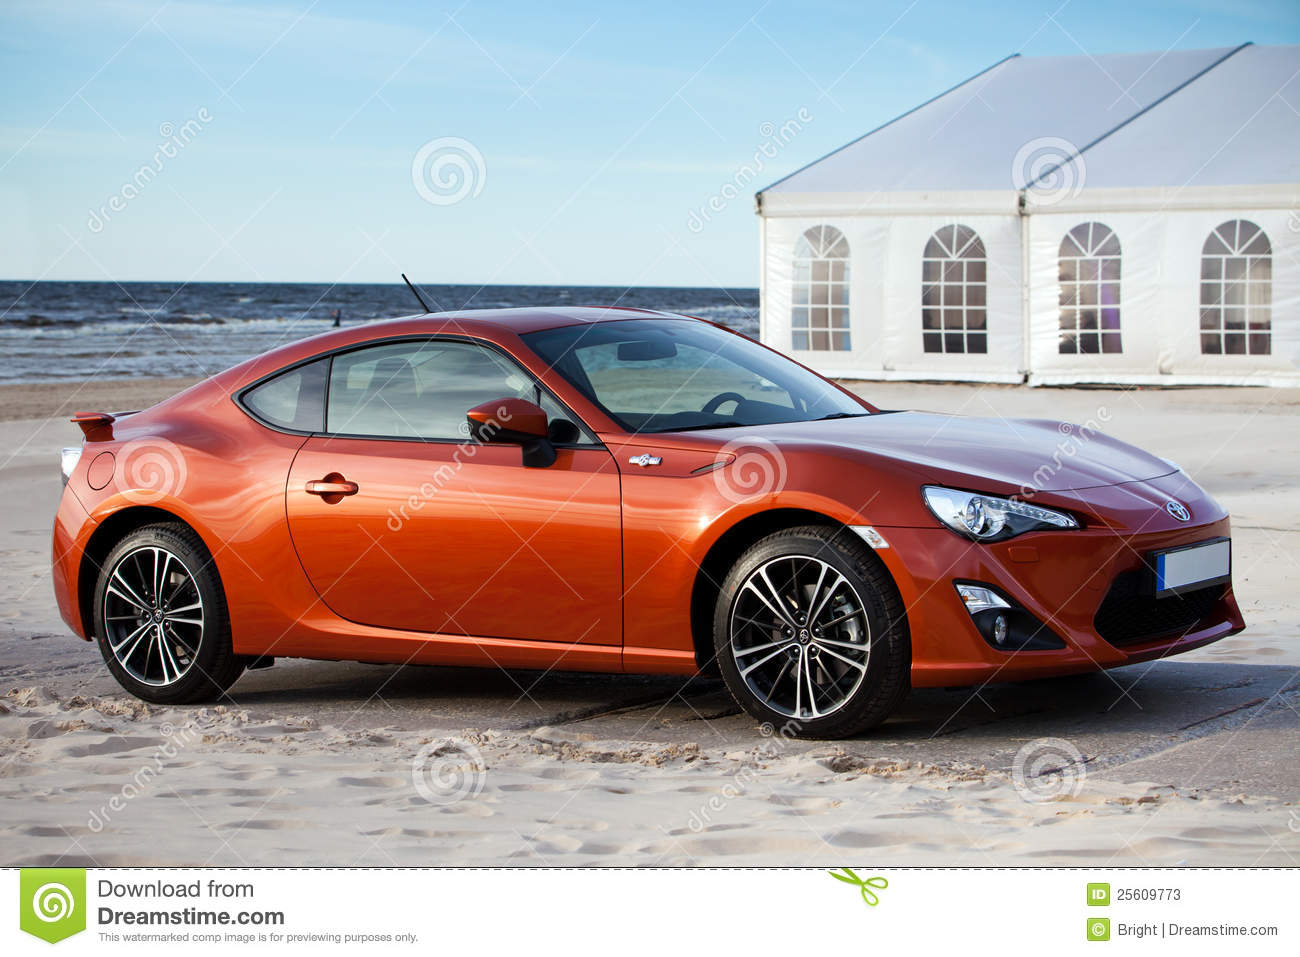 New Toyota Sports Car Editorial Stock Photo - Image: 25609773